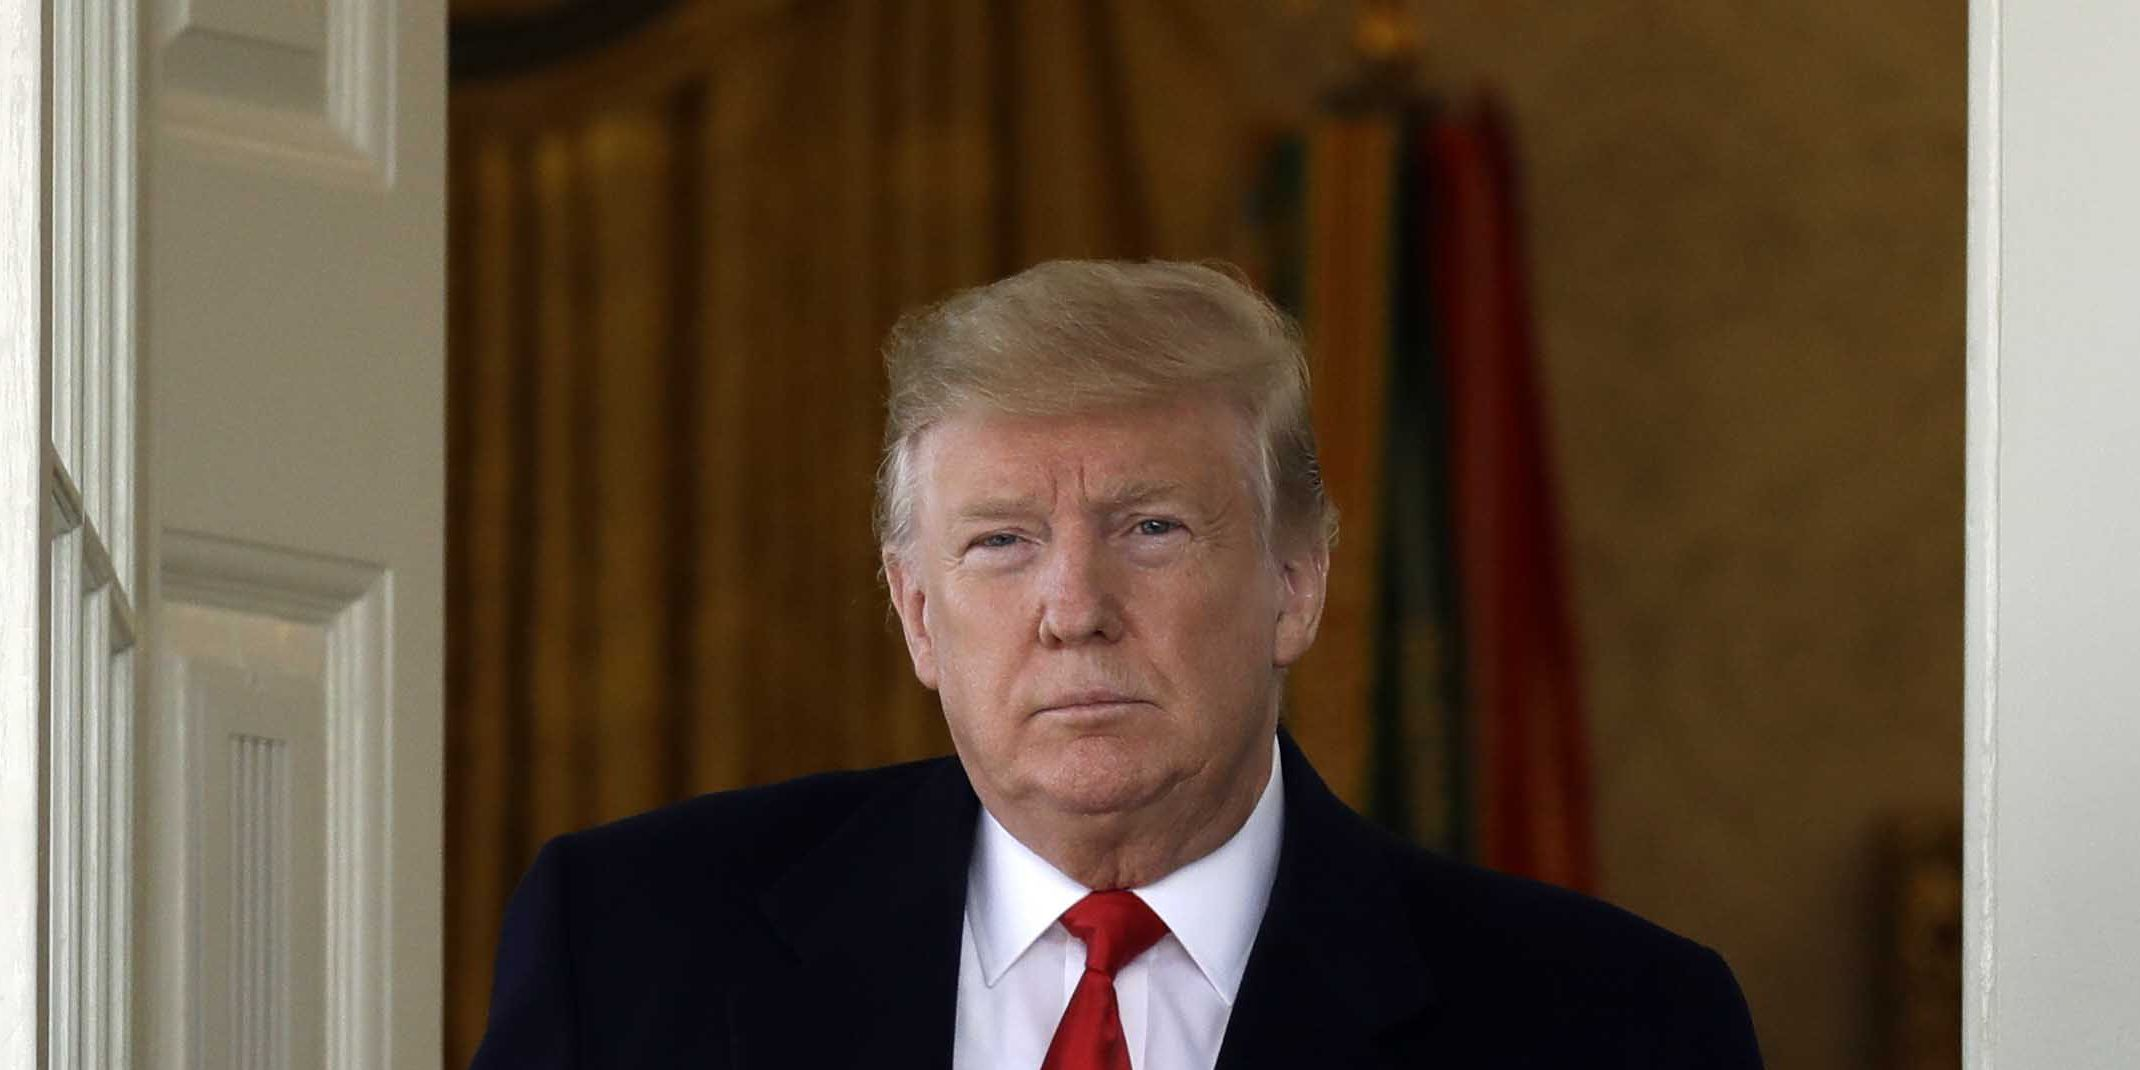 Trump ends shutdown, signs bill to reopen government